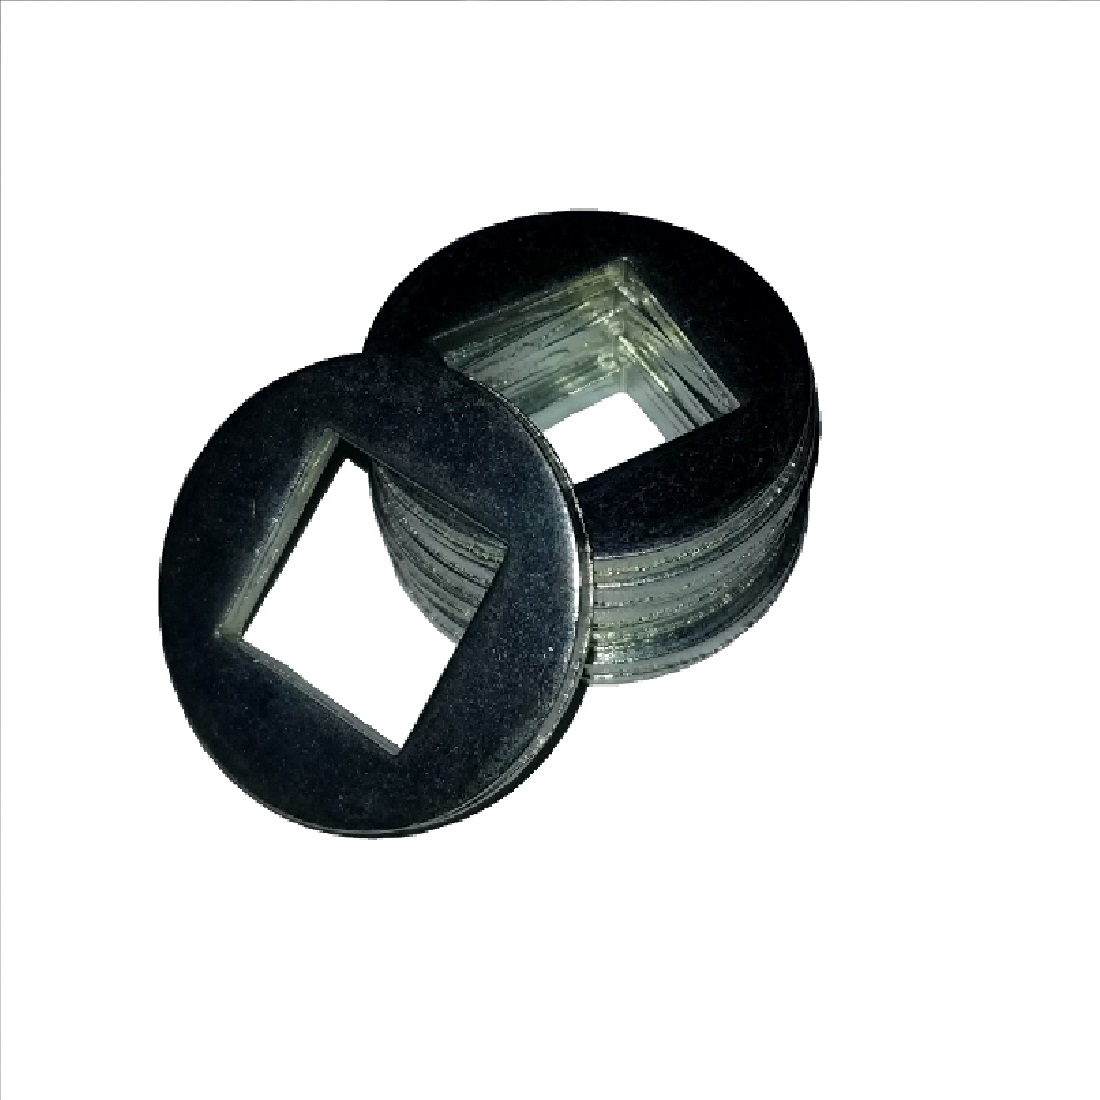 Square ID Washer - 0.188 ID, 0.375 OD, 0.030 Thick, Low Carbon Steel - Soft